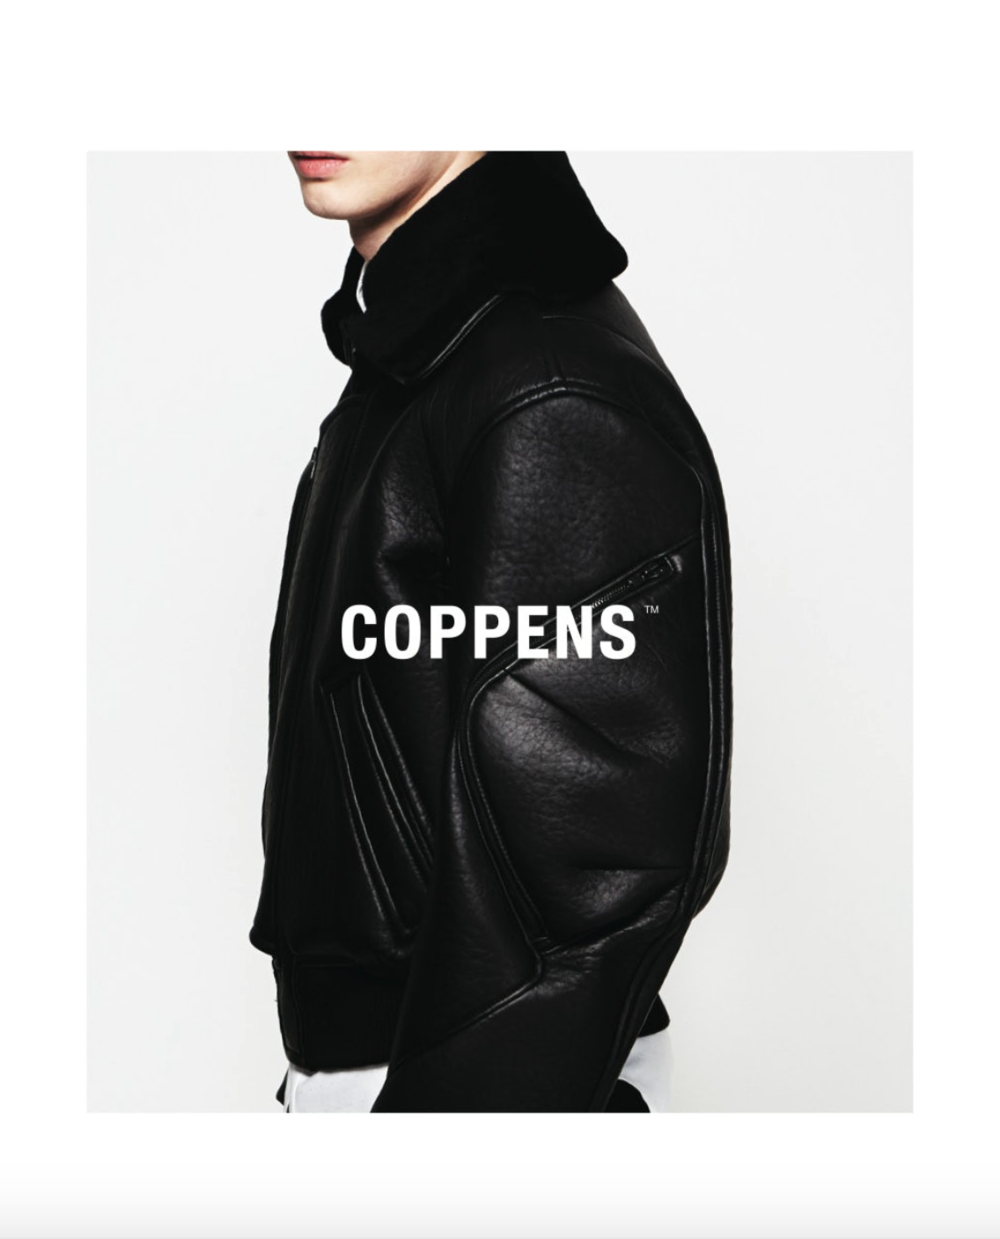 2018 Tim Coppens - campaign AW18